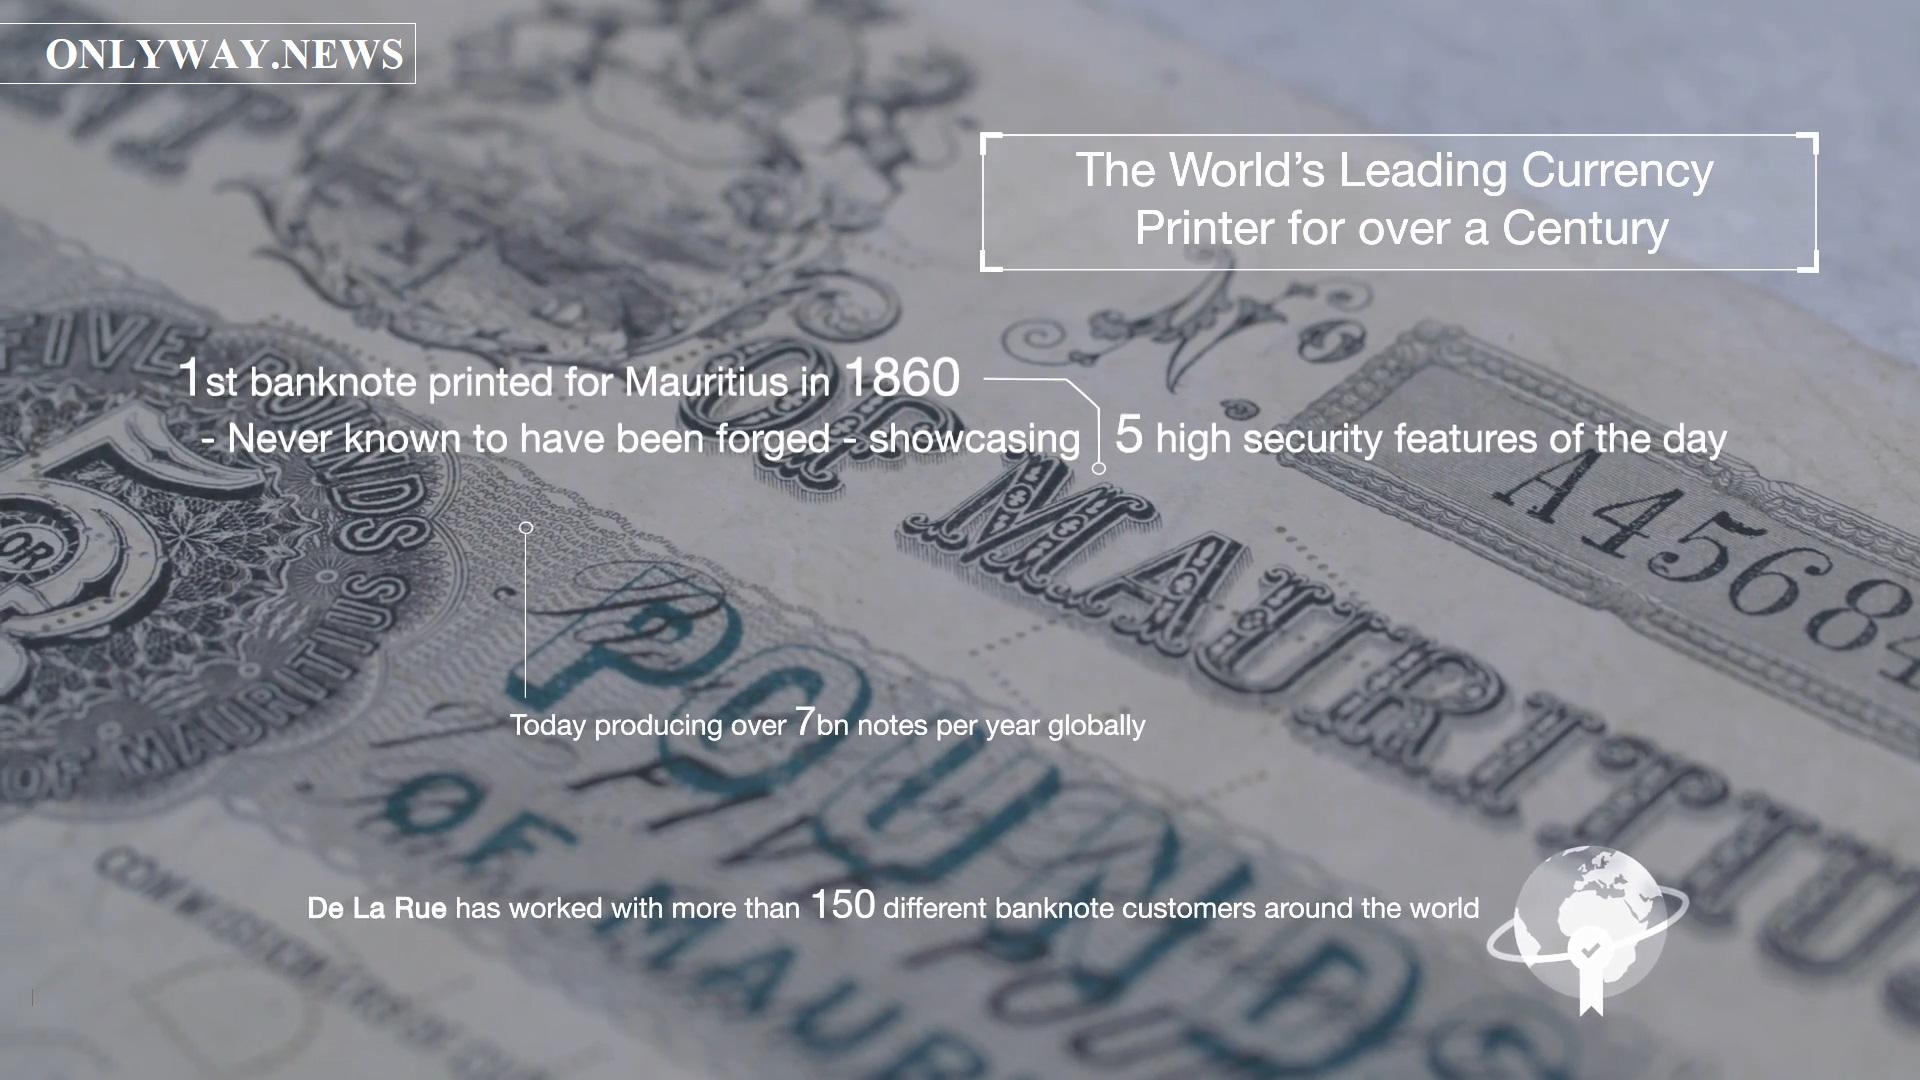 Established over 200 years ago, De La Rue work with governments, central banks and commercial organisations